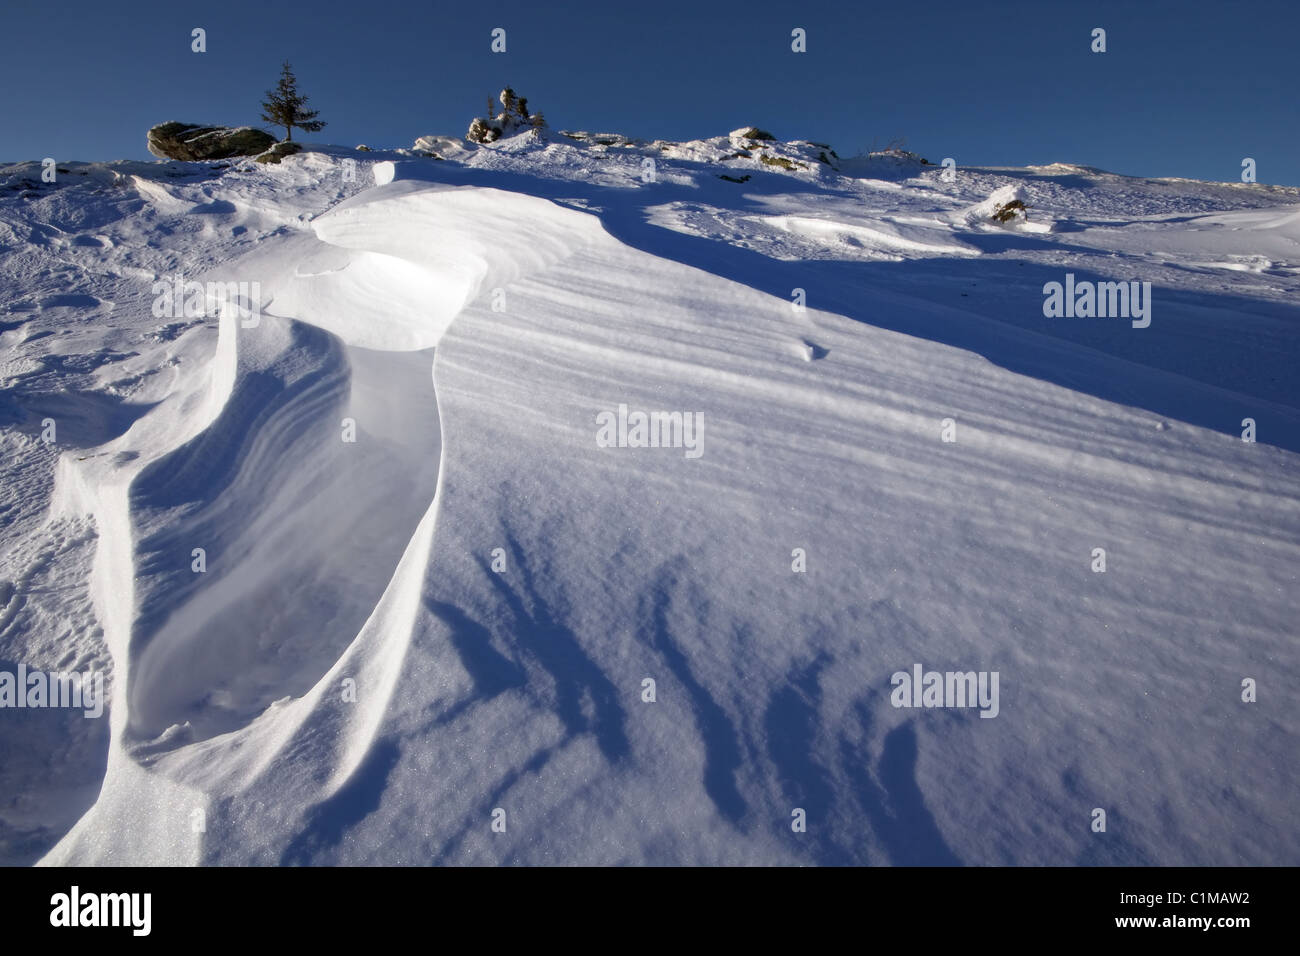 Snowdrift with wavy snow shapes. Winter landscape. National park Taganay. South Ural mountains. Russia. - Stock Image